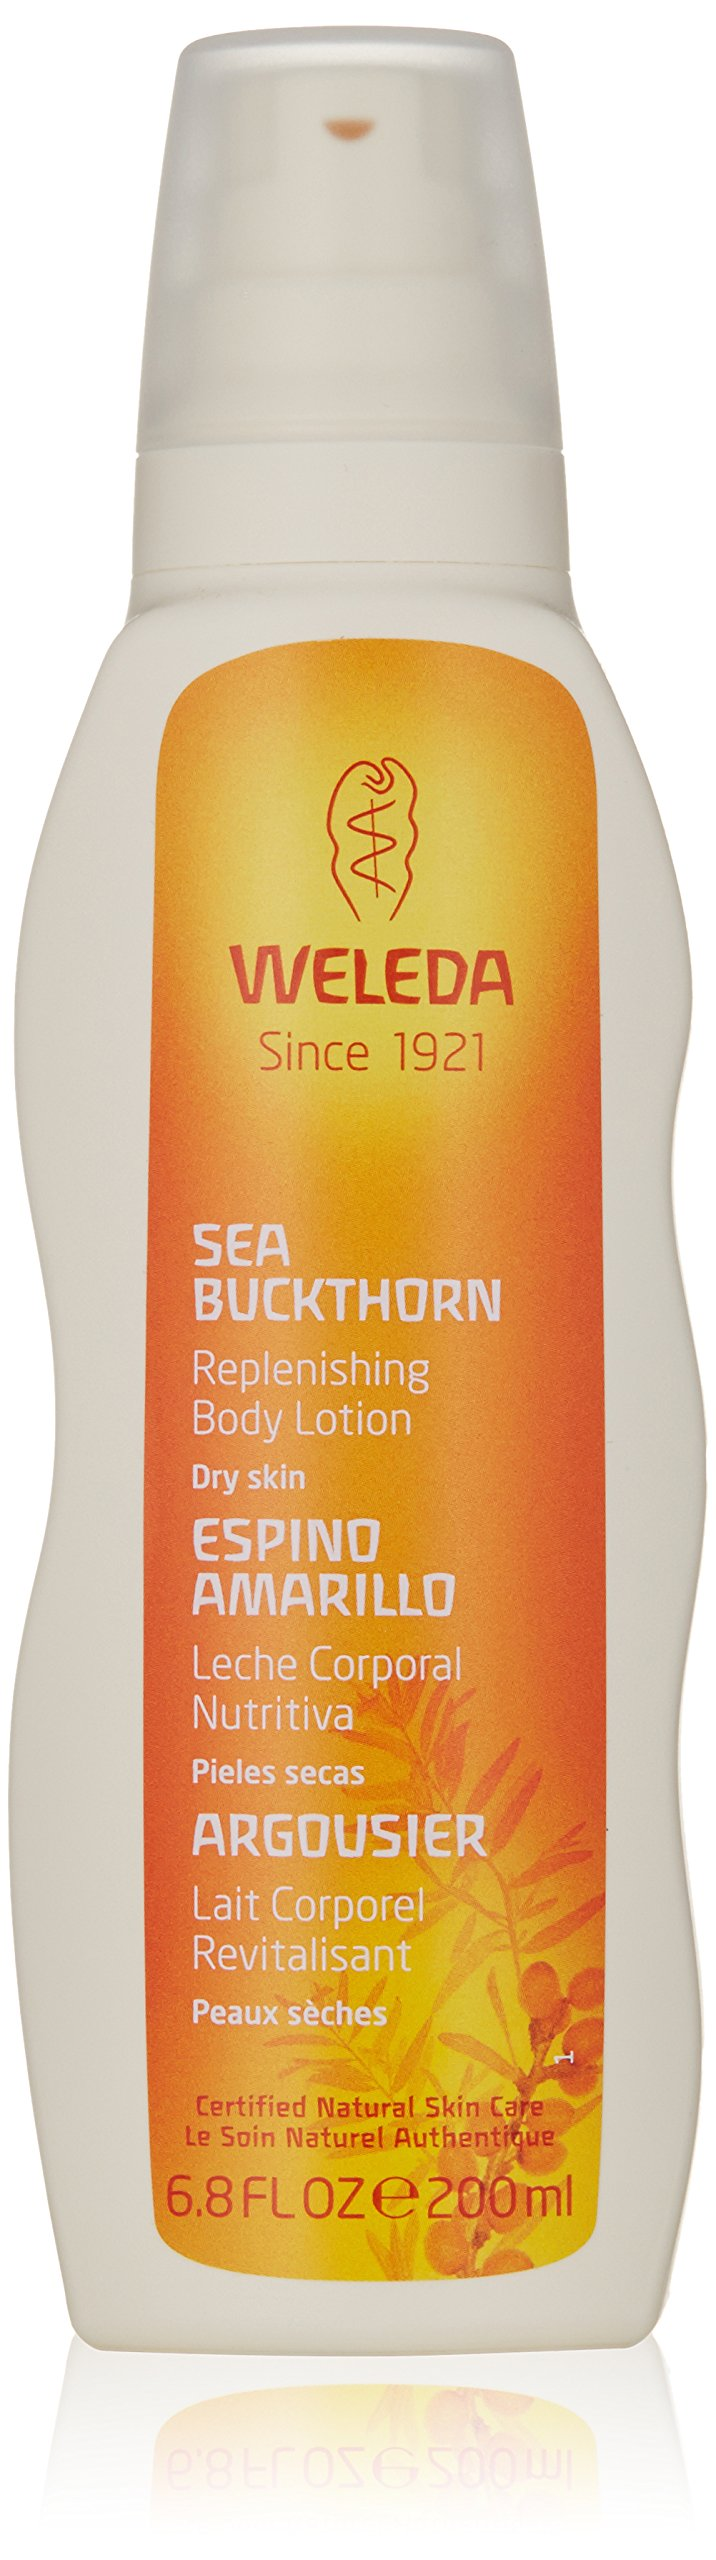 Weleda Replenishing Body Lotion, Sea Buckthorn, 6.8 Fluid Ounce